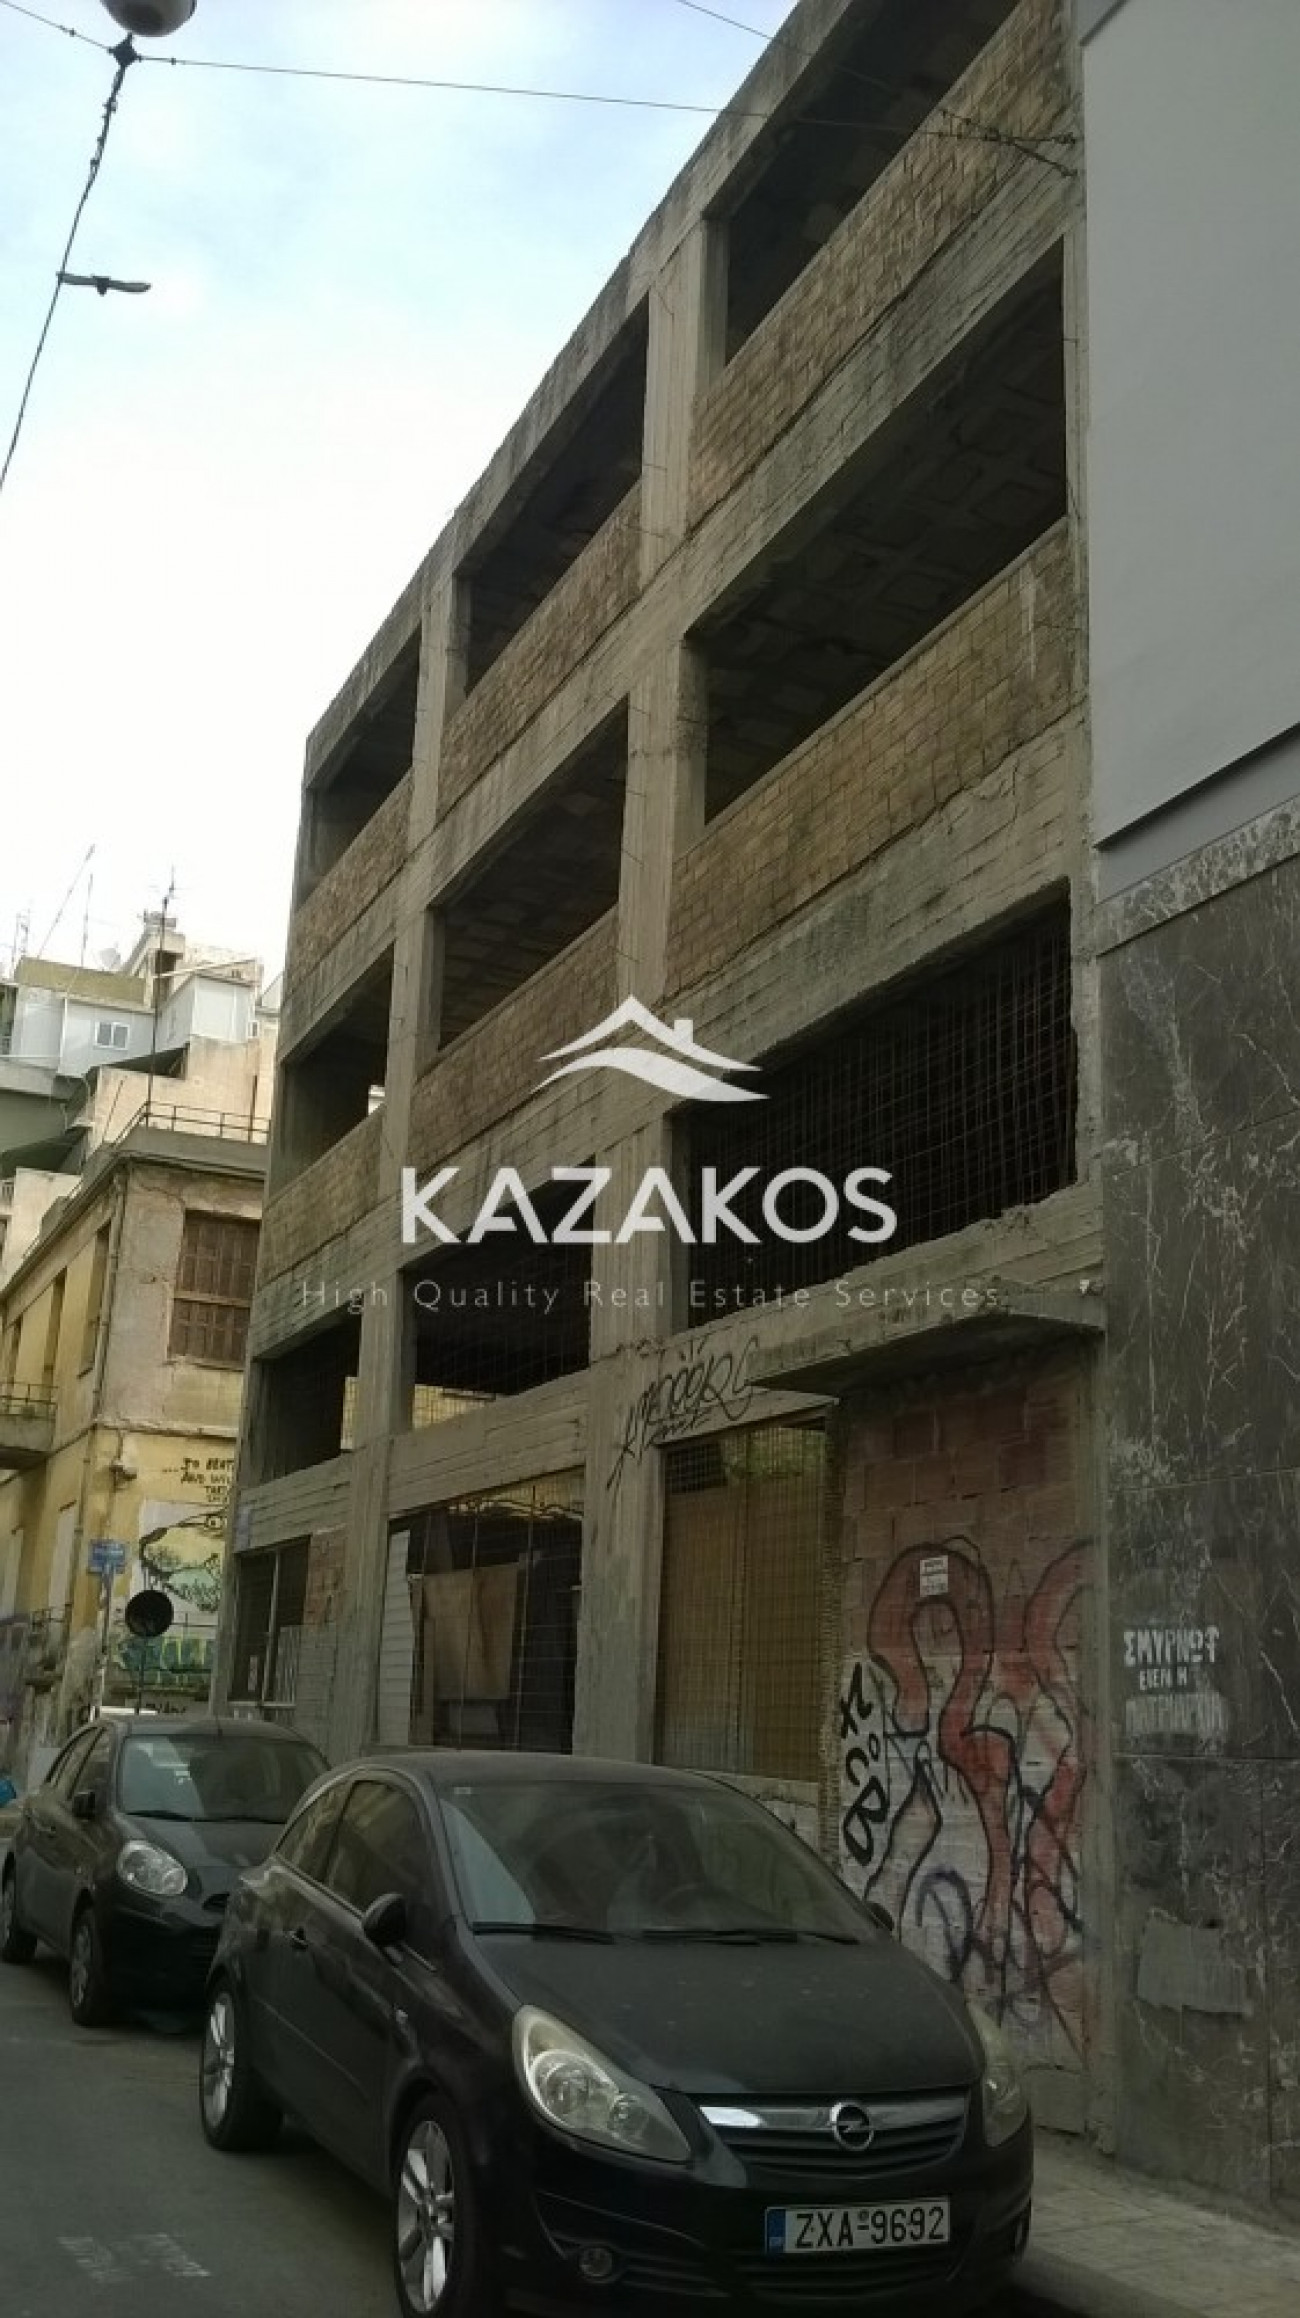 Residential Other for Sale in Amerikis Square, Athens City Center, Greece